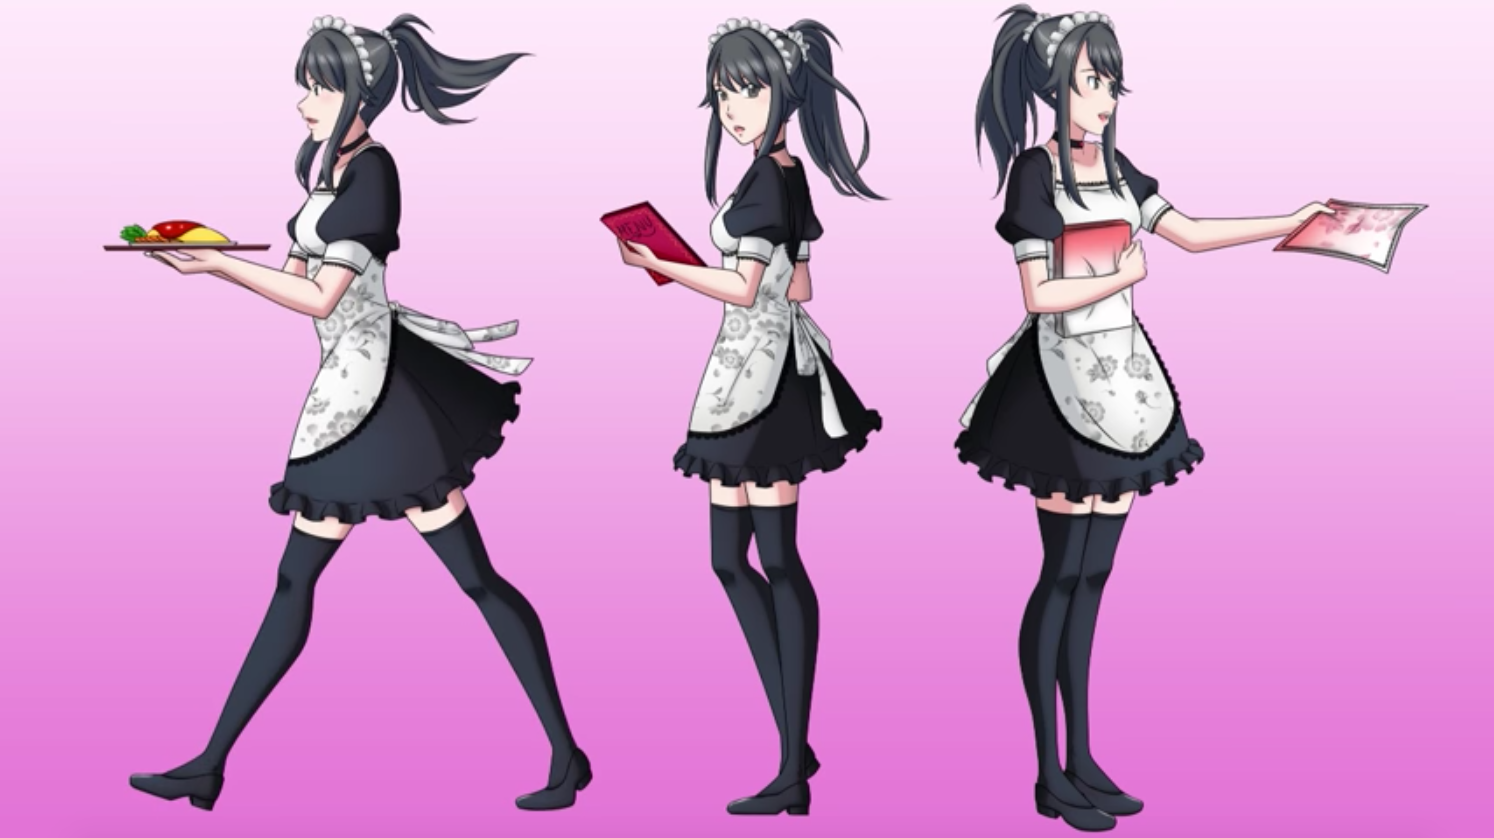 Yandere Chan As A Maid Yandere Simulator Know Your Meme